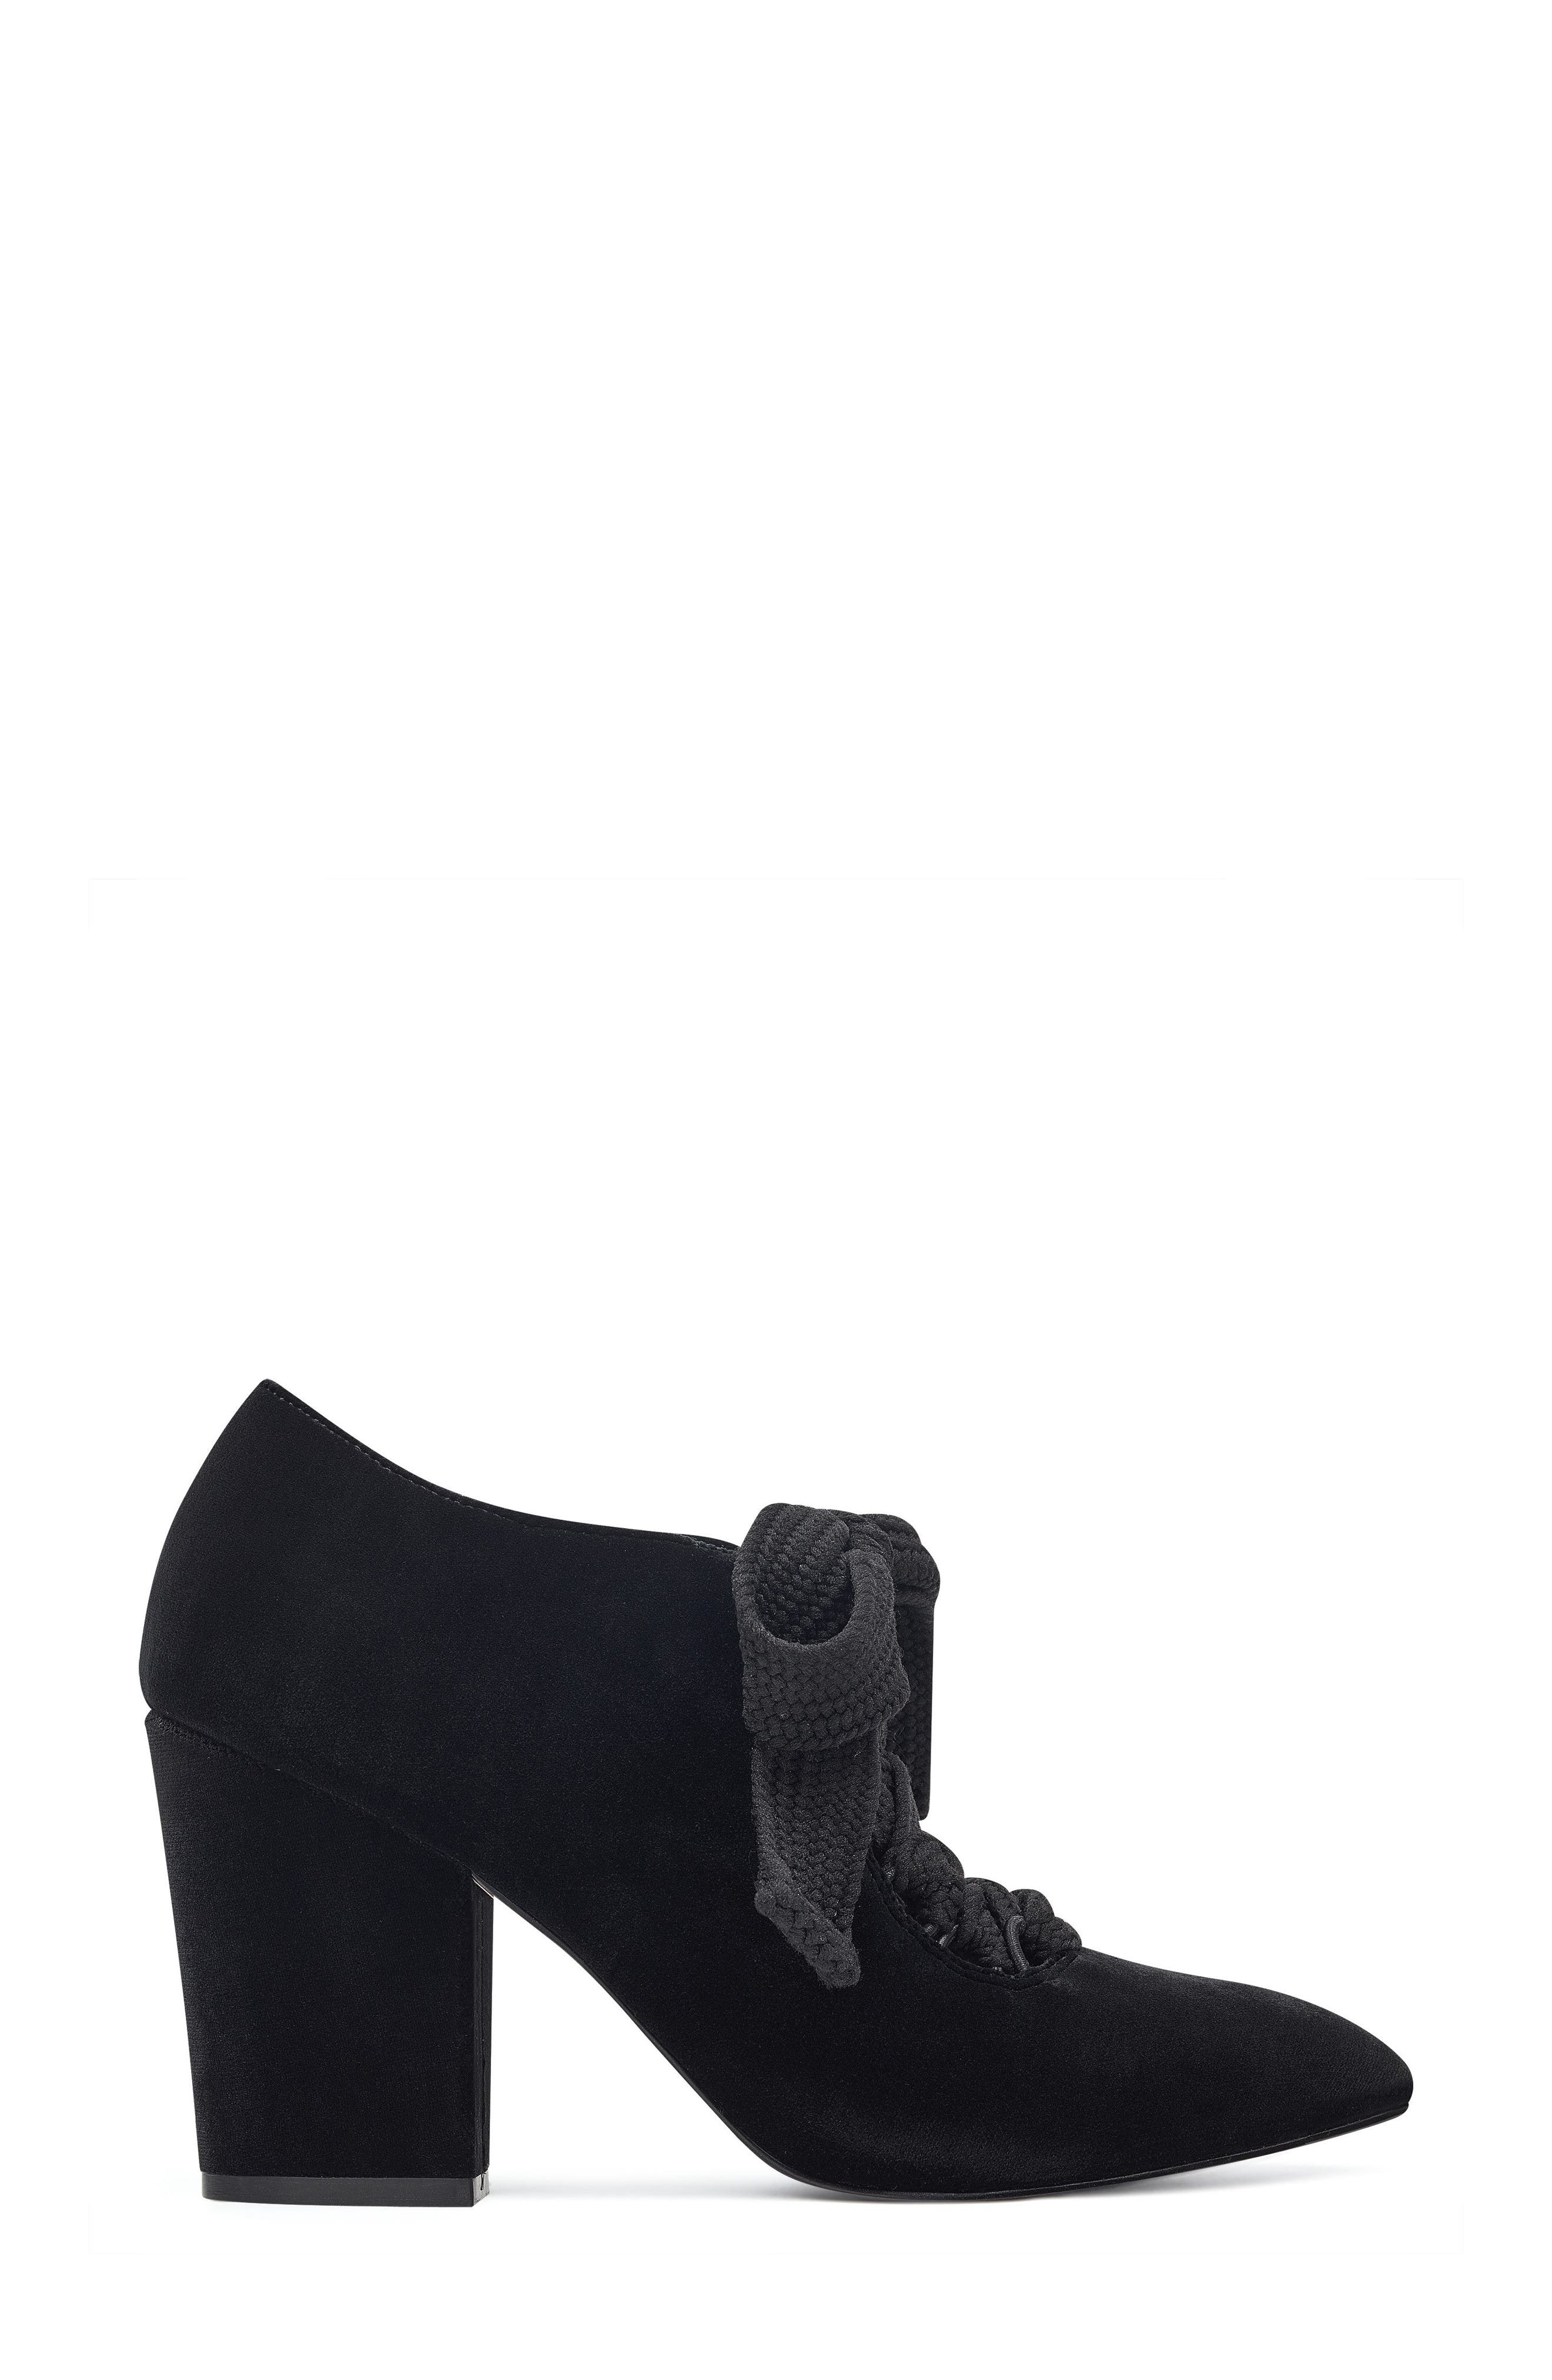 Sweeorn Lace-Up Bootie,                             Alternate thumbnail 3, color,                             009